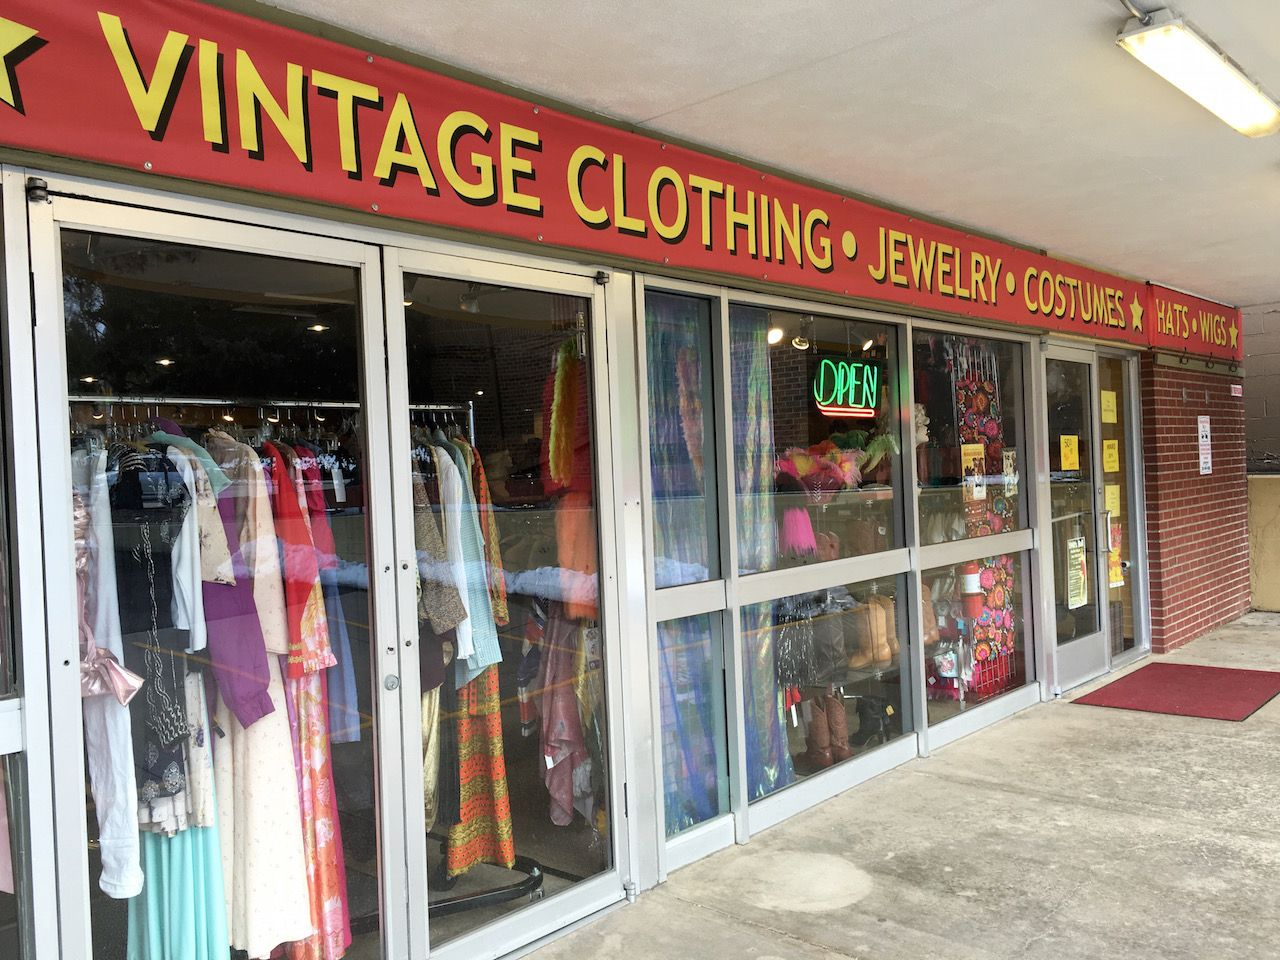 Your Guide To Thrift Shopping In Denver 5280 Thrifting Thrift Shopping Vintage Clothes Shop